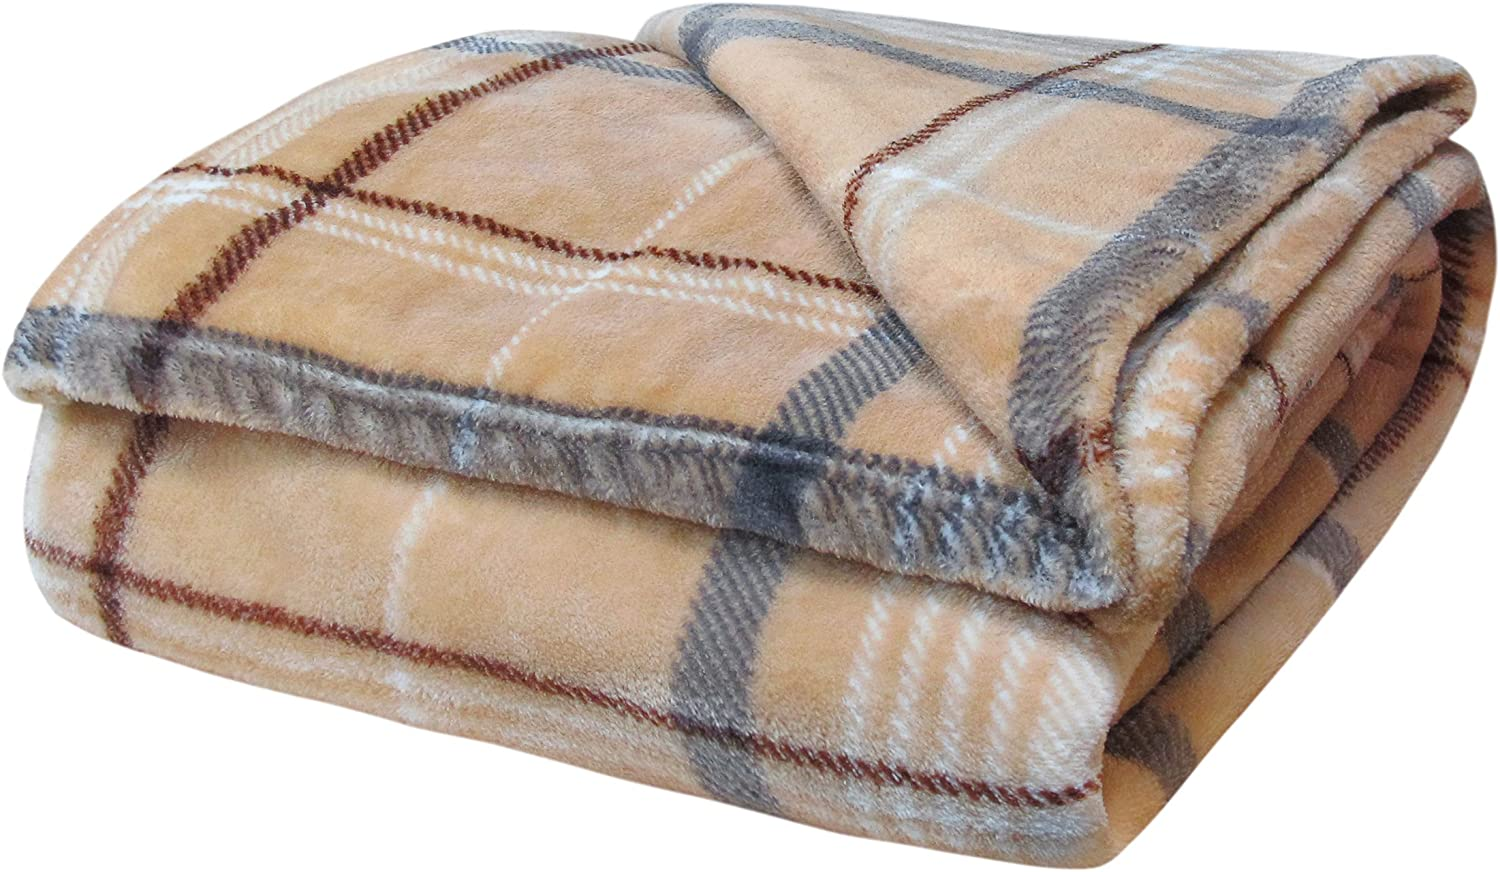 Velosso Teddy Super Soft Thermal Soft Cuddly Flannelette Throwover 130x180 Large 1 Seater Sofa//Bed Blanket Throw Cream